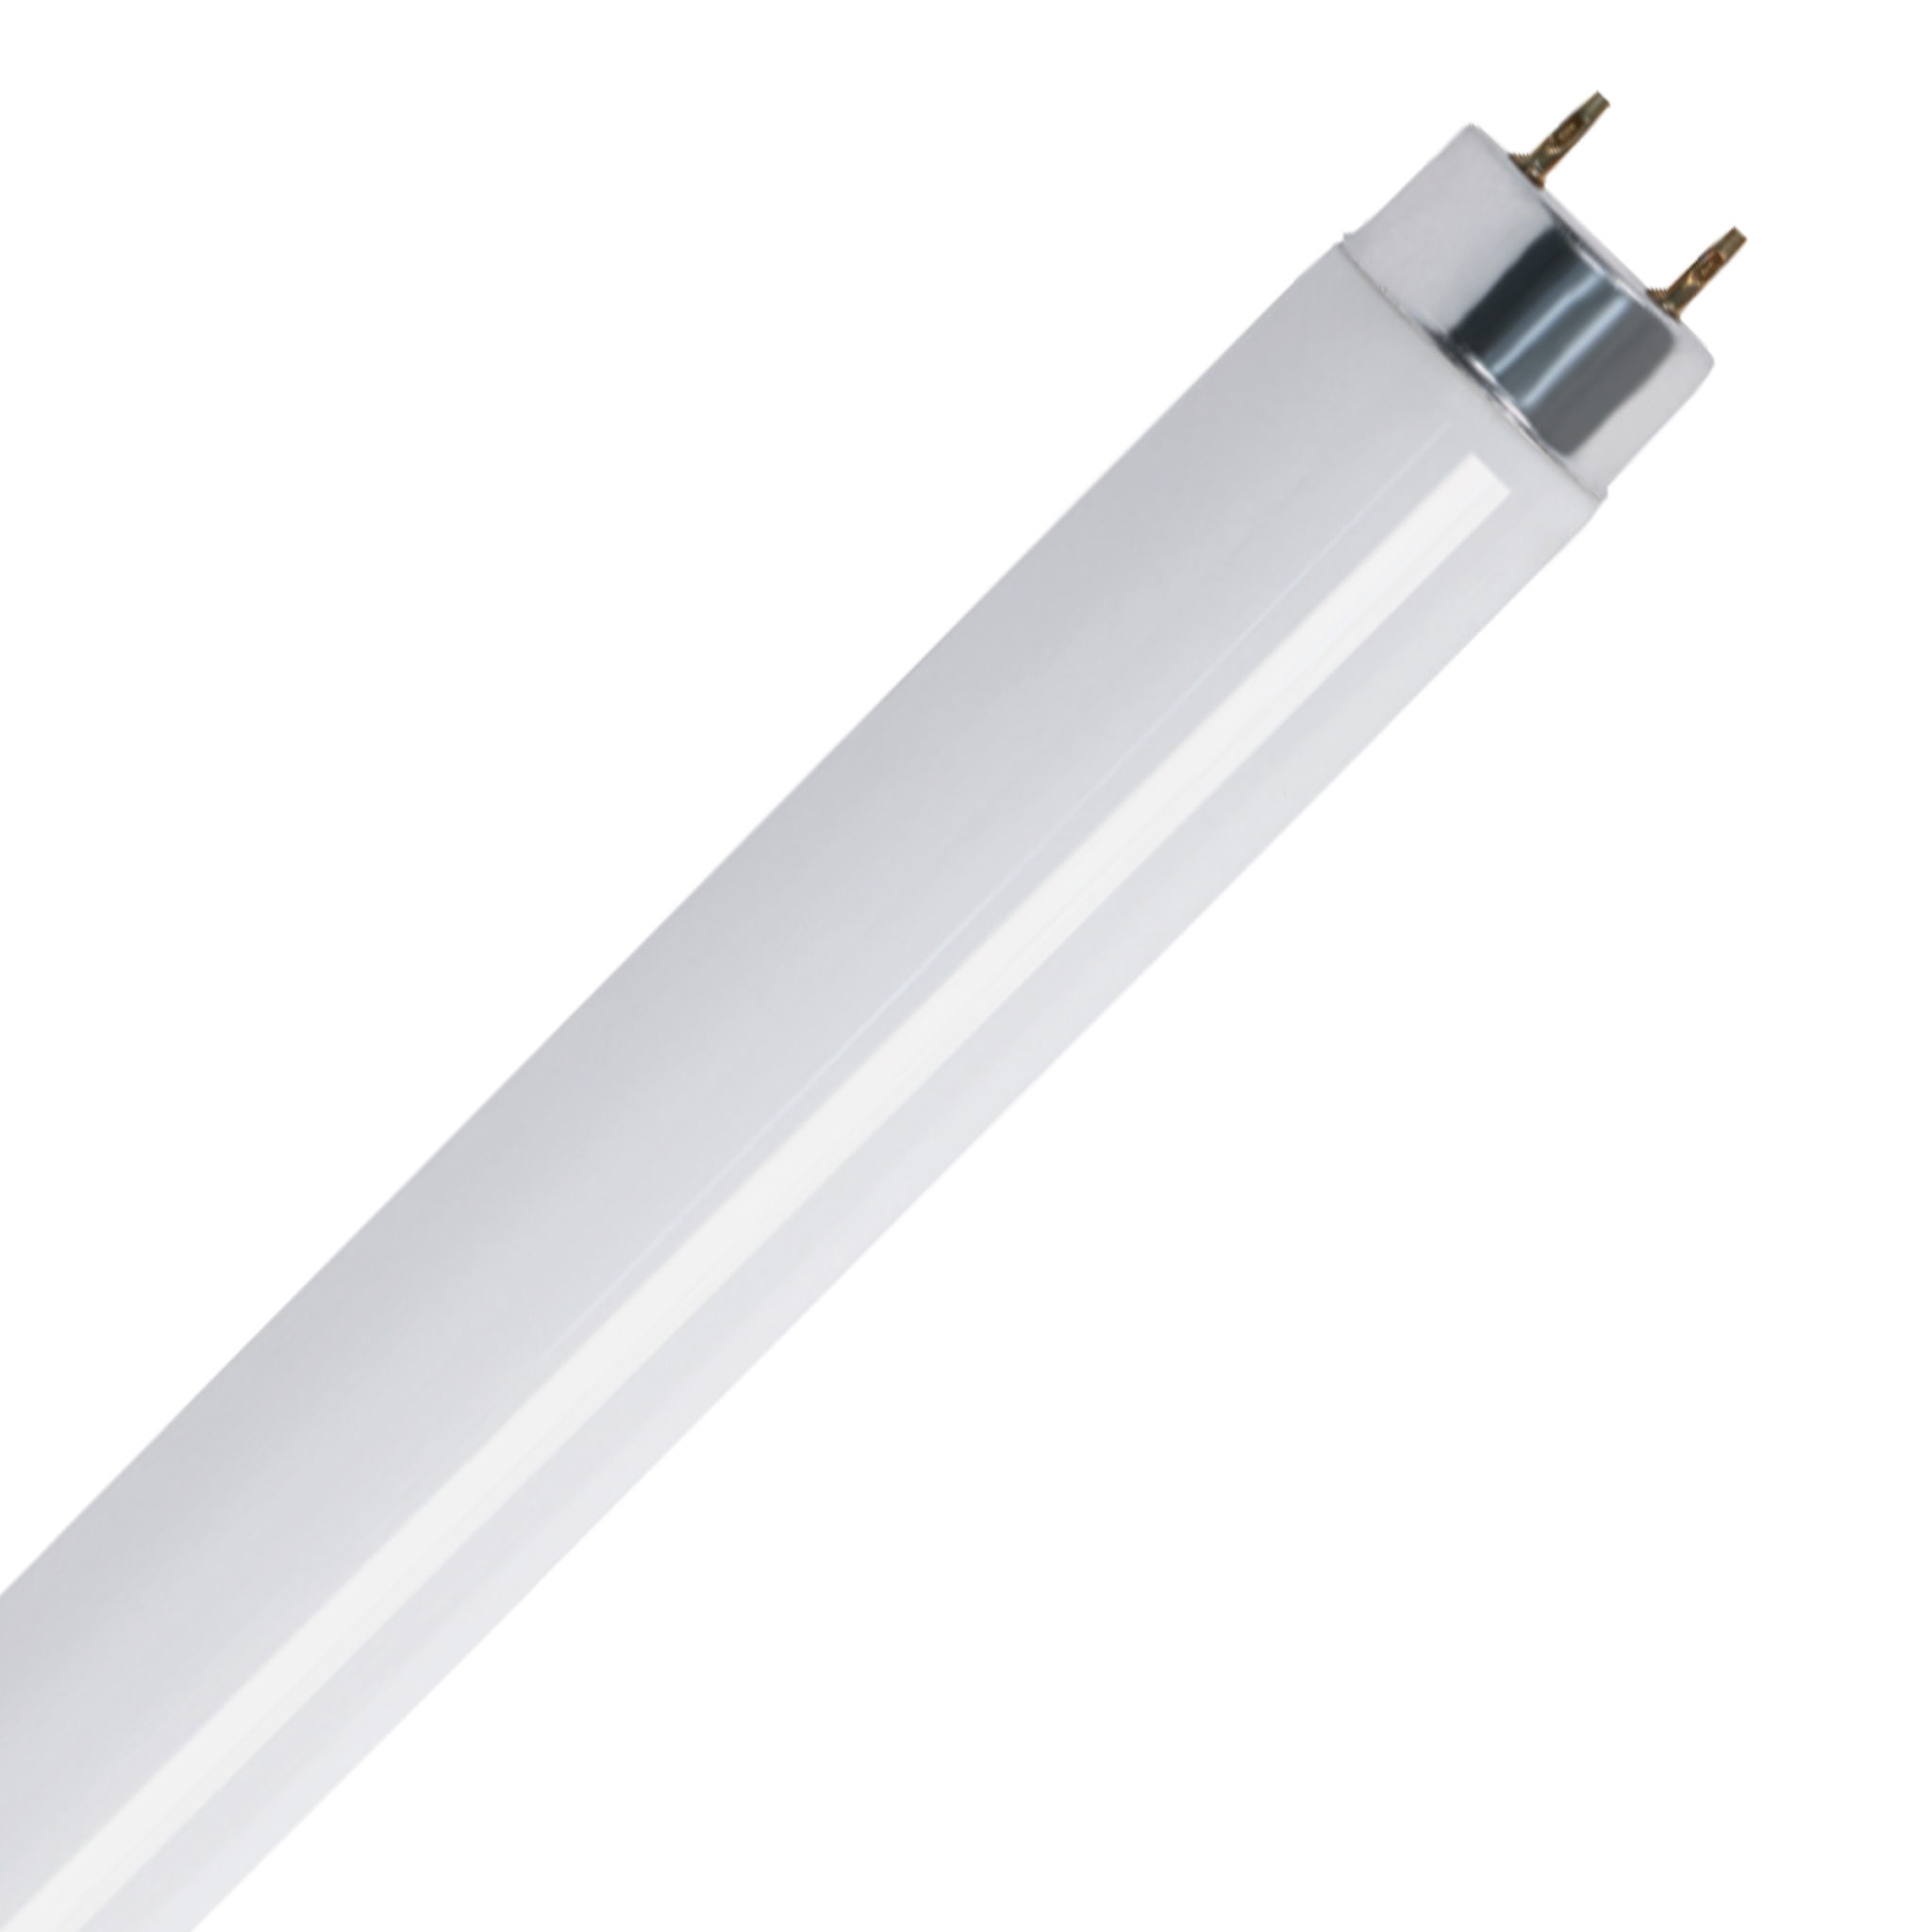 F32T8/965/2 32 Watt Cool White T8 Fluorescent Linear - Feit Electric